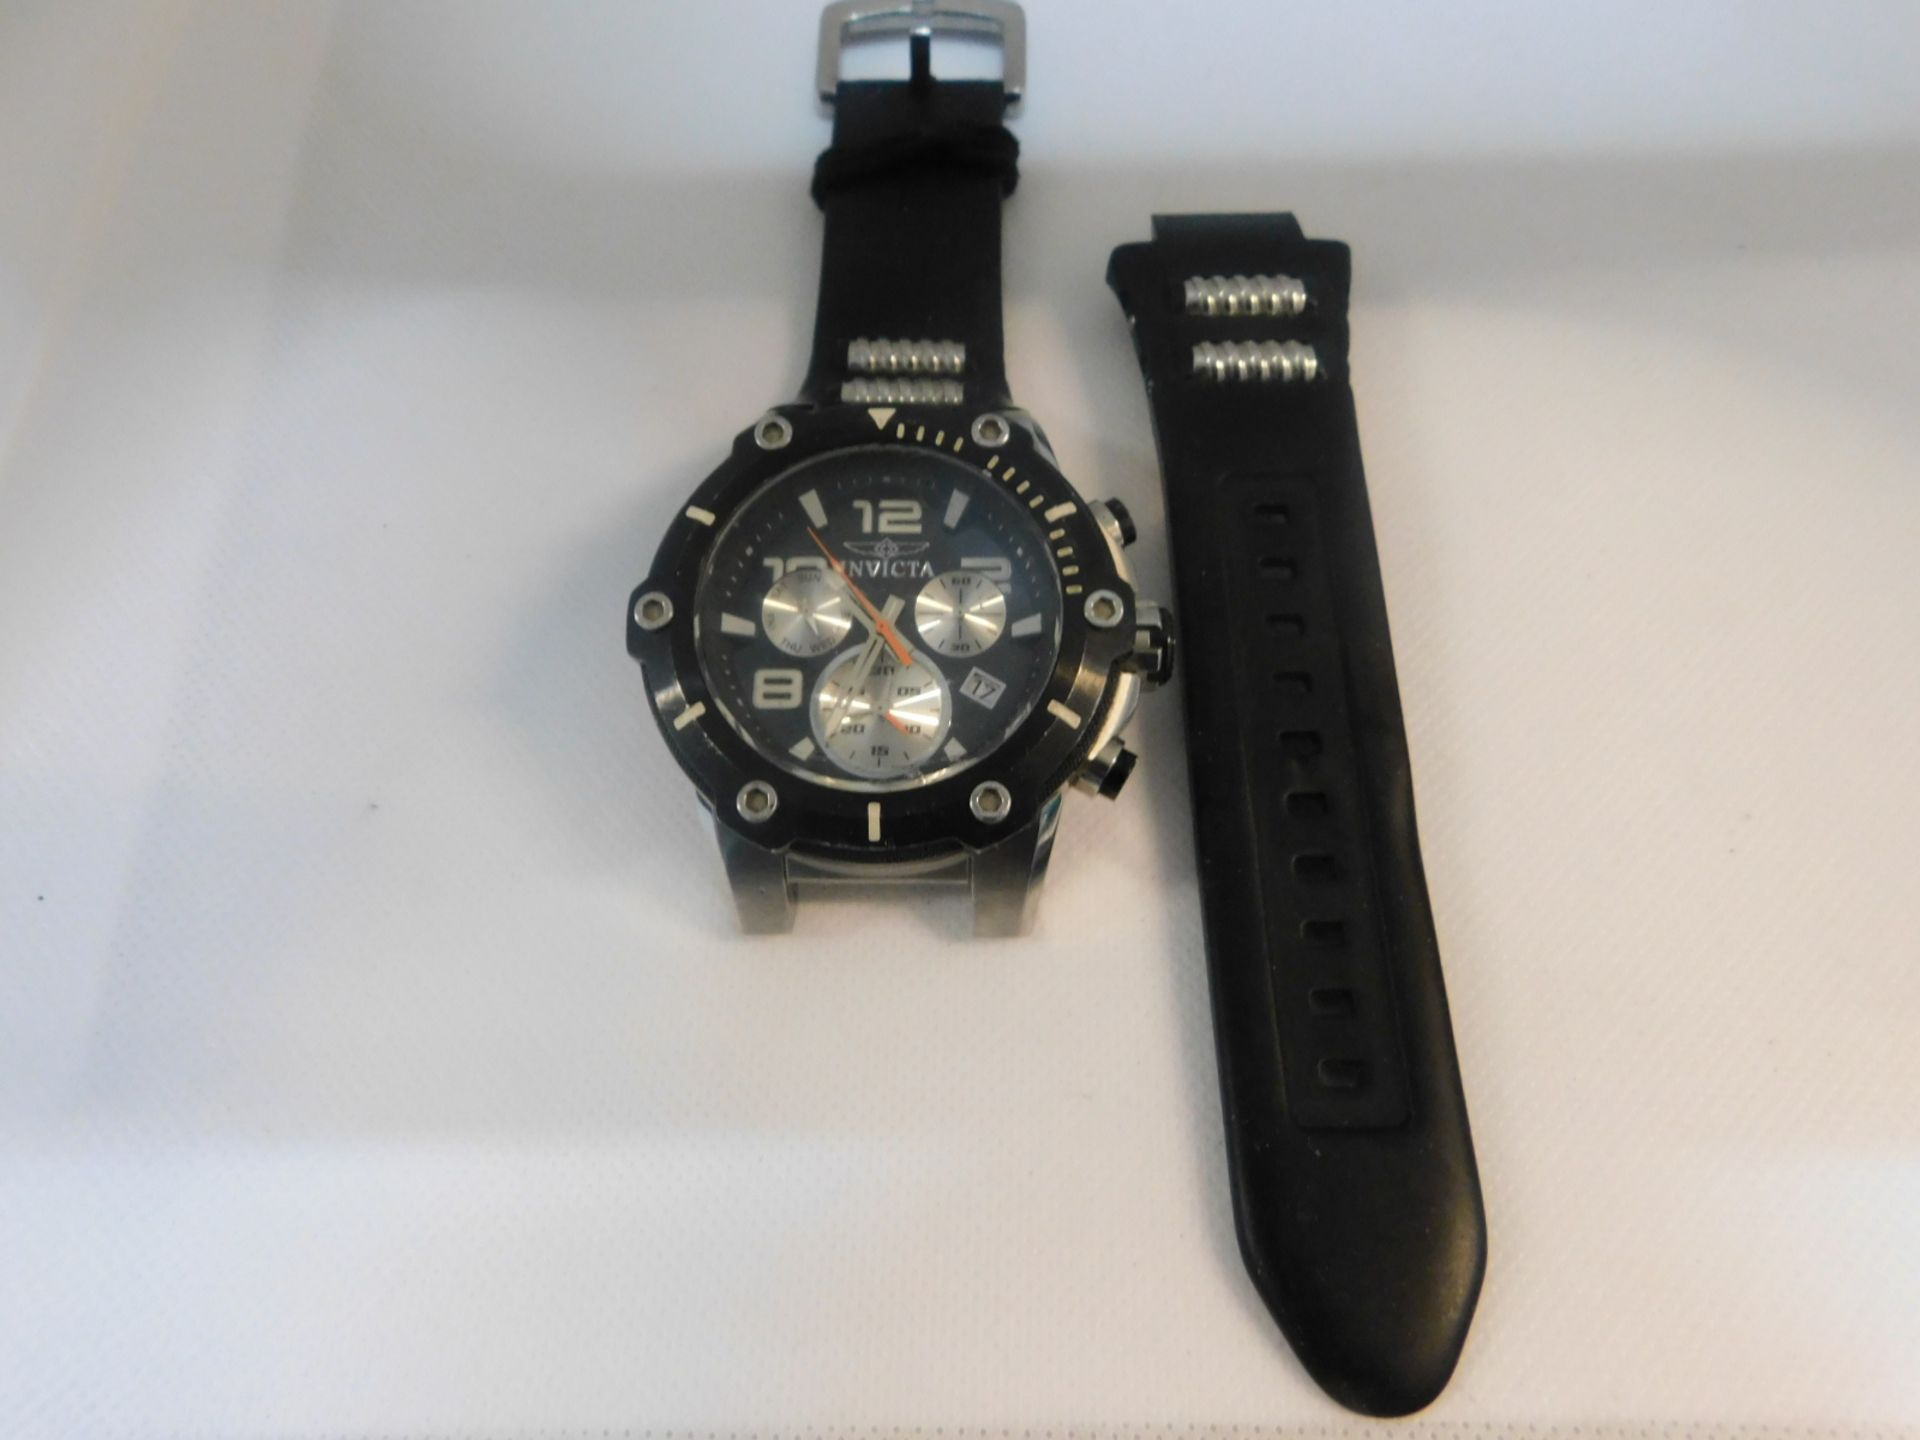 1 INVICTA MENS CHRONOGRAPH WATCH RRP £299 (STRAP NEEDS PIN REPLACING)